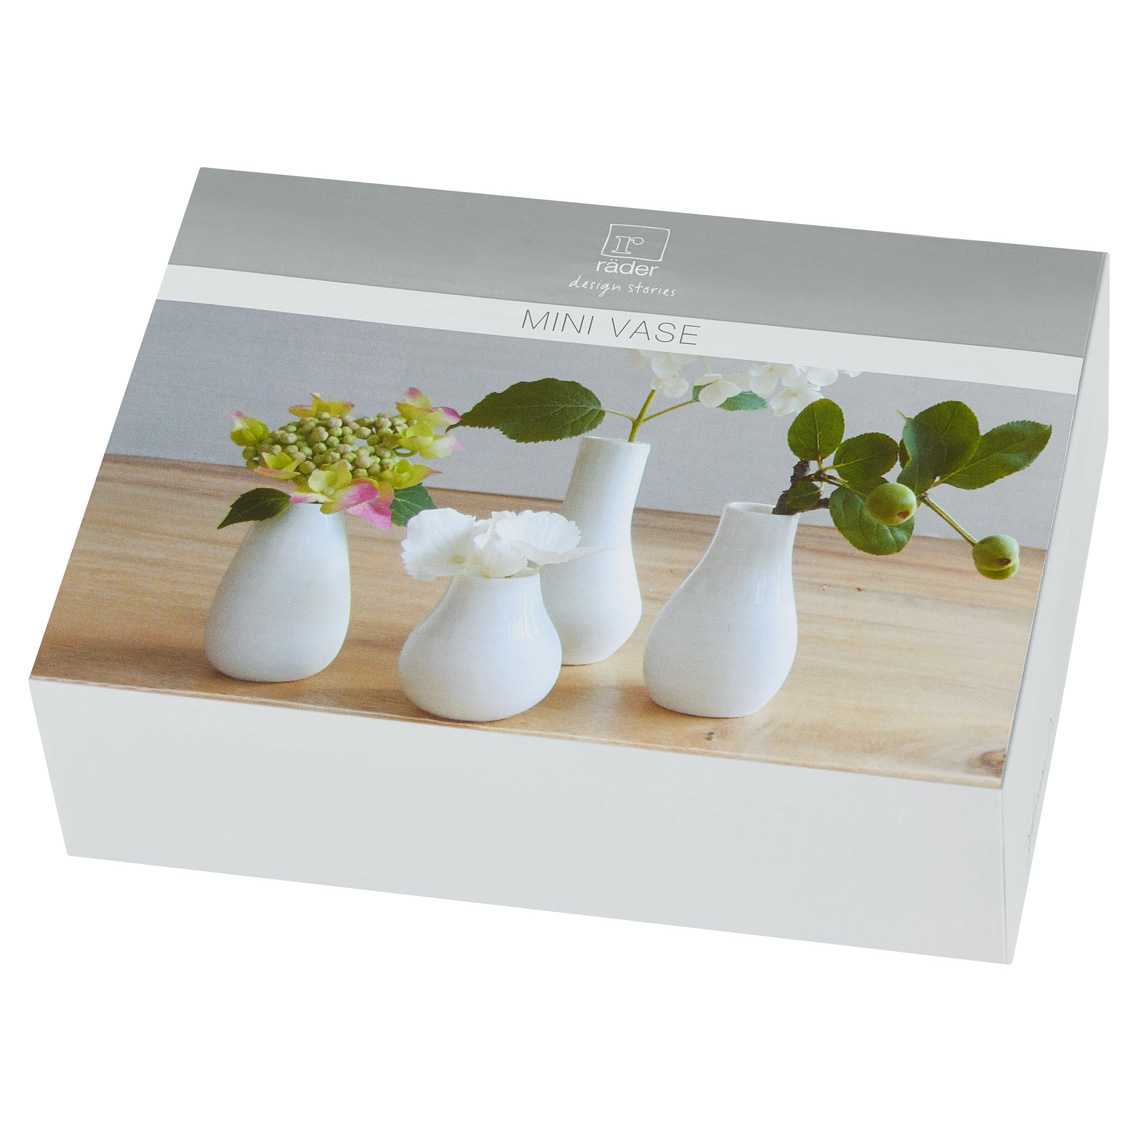 Mini vase set of 4